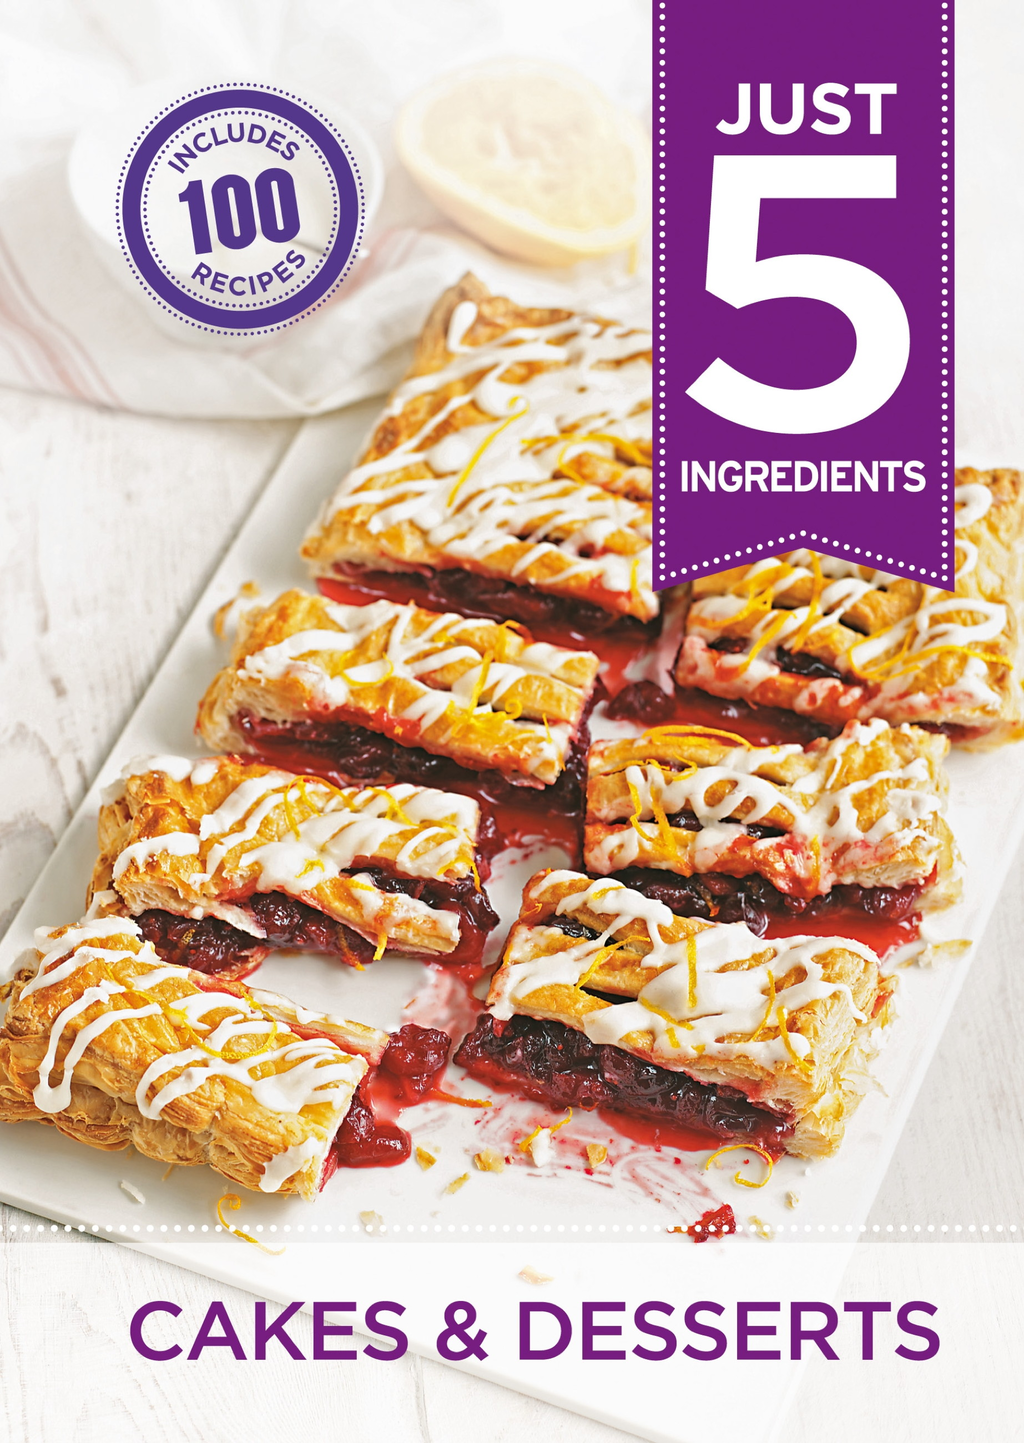 Just 5: Cakes & Desserts Make life simple with over 100 recipes using 5 ingredients or fewer